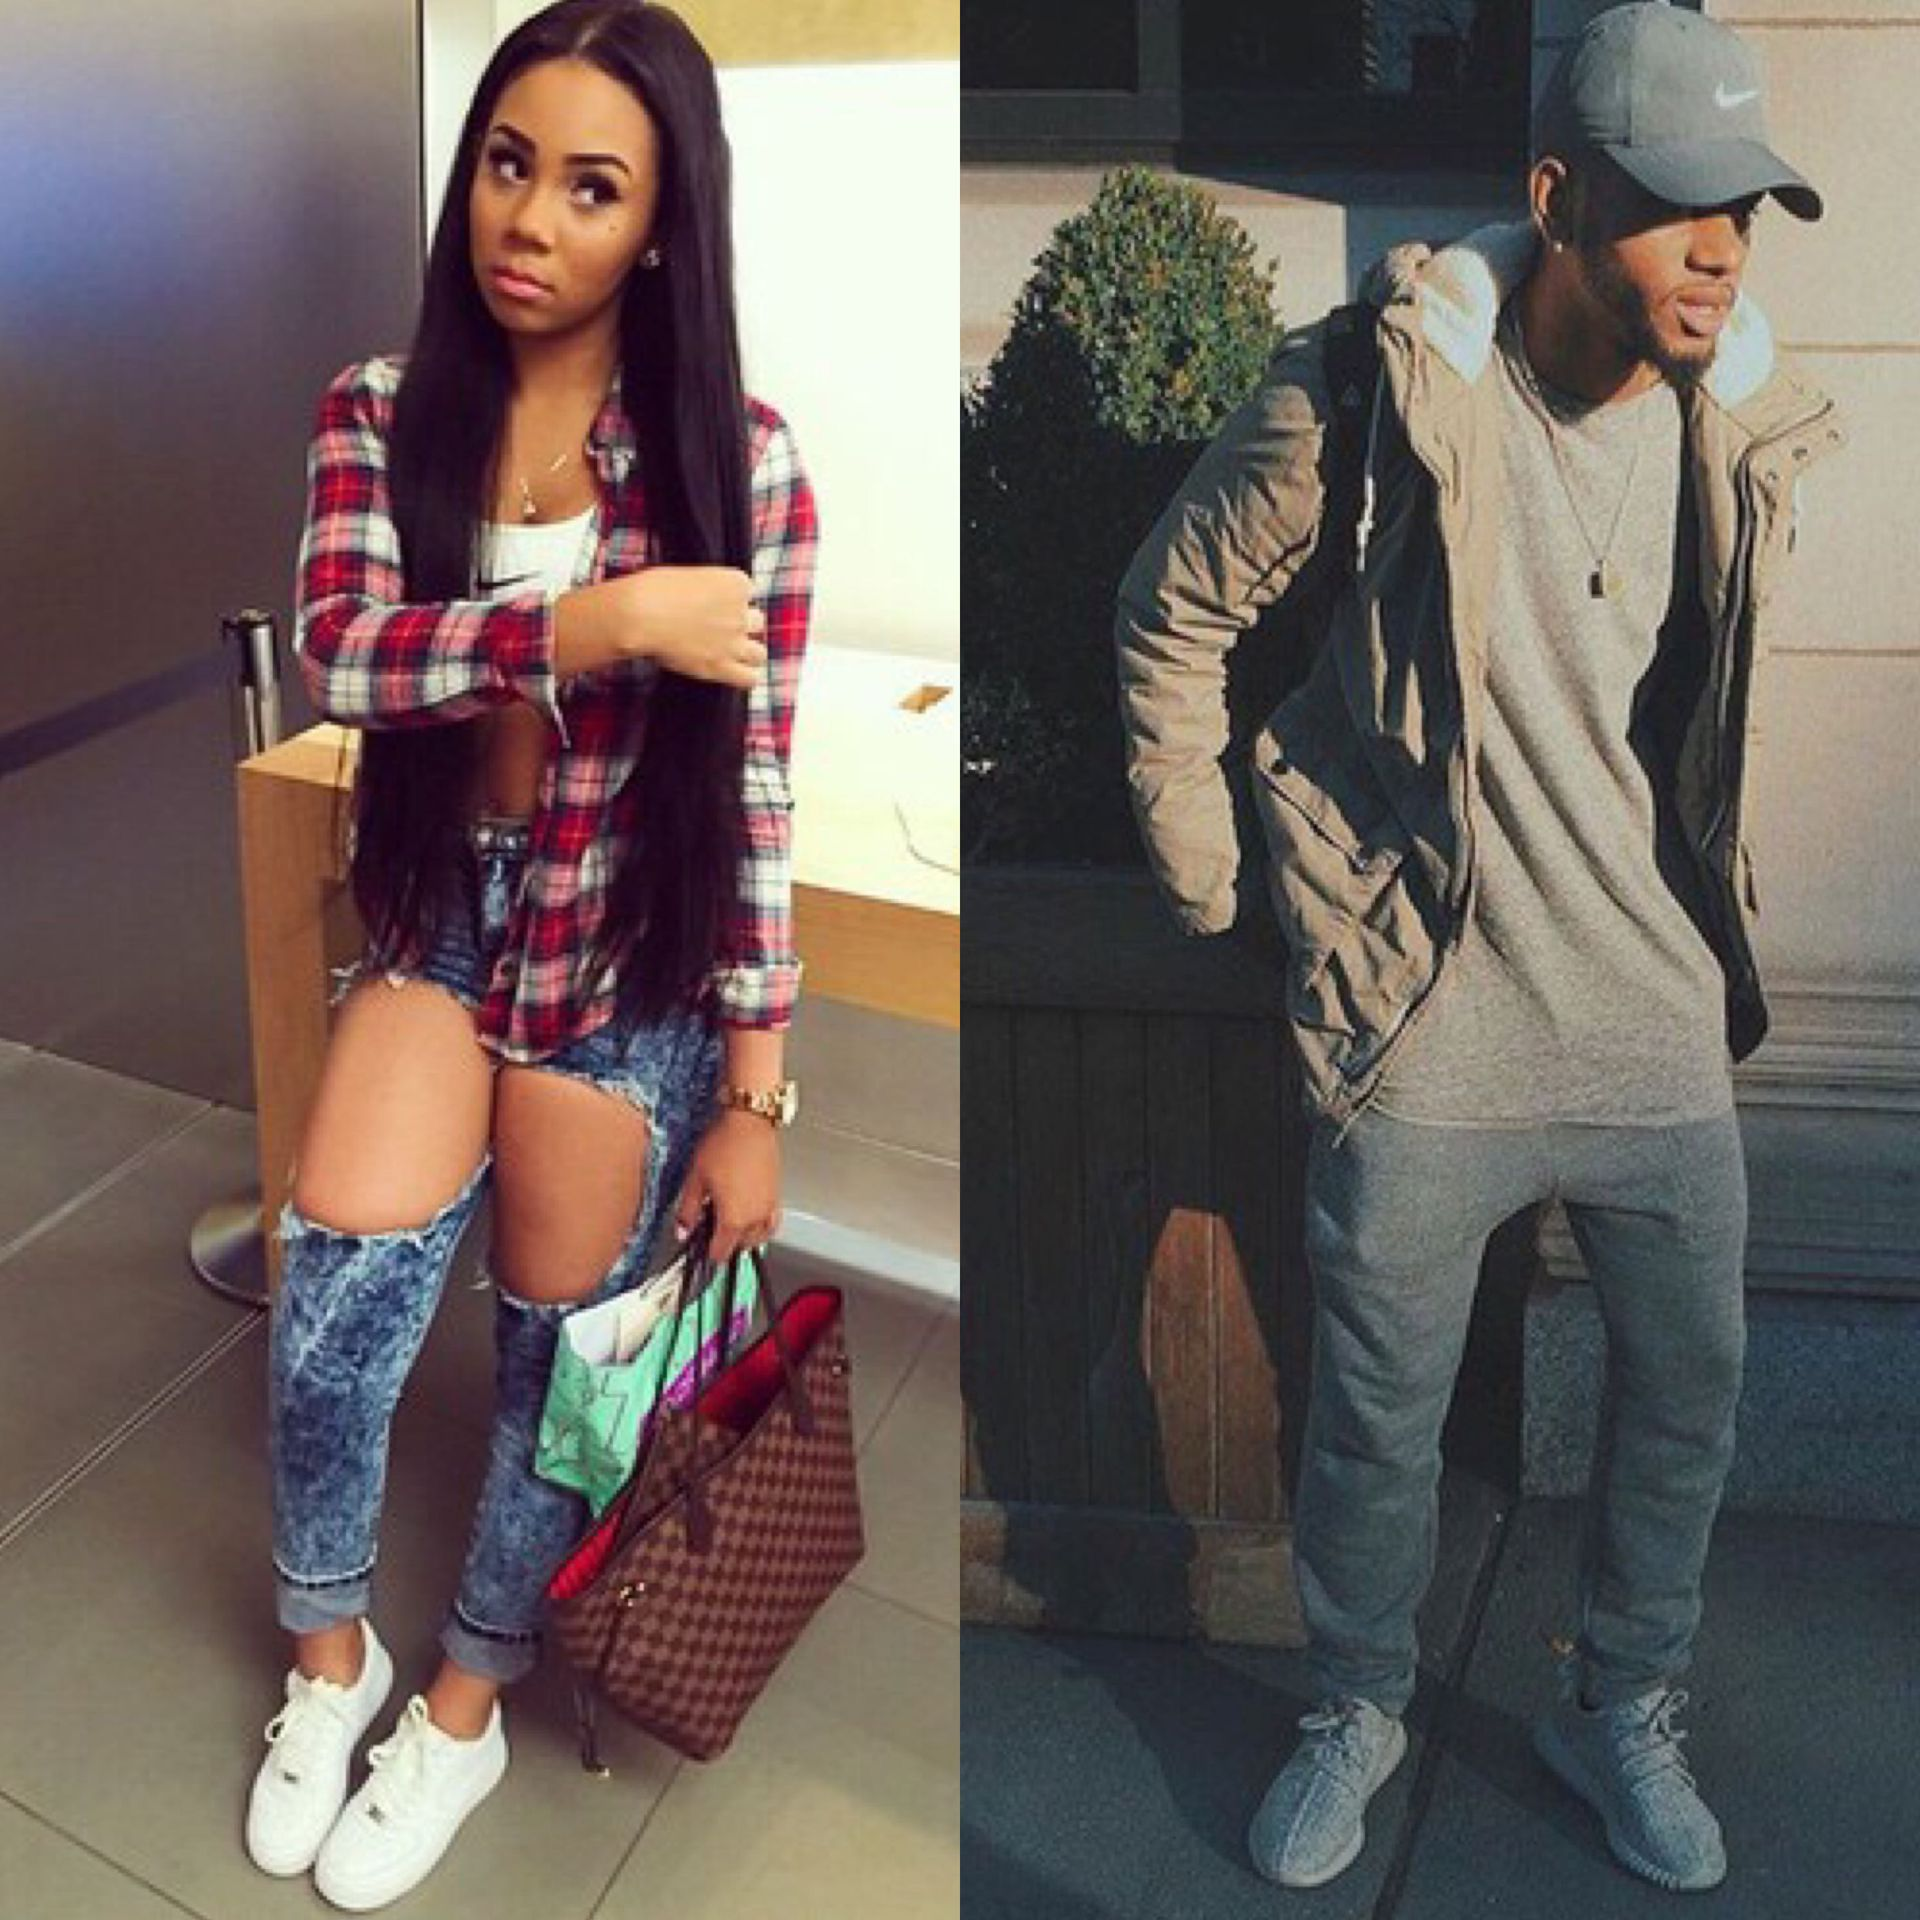 ea29f726fec Been That Way (A Bryson Tiller Story) - Self Righteous - Wattpad